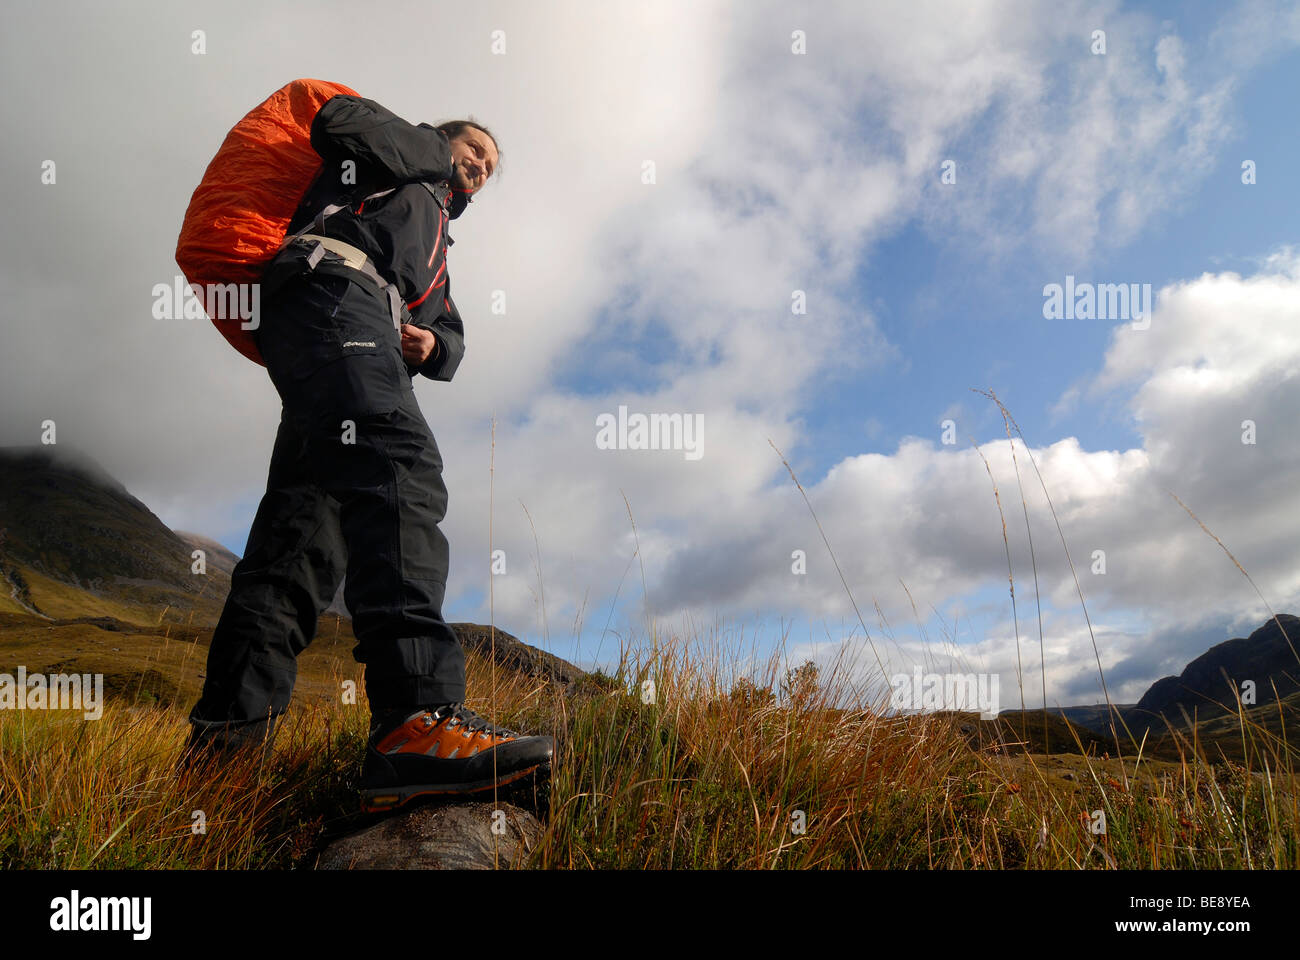 Hiker with backpack on the road in the Scottish mountains in moody clouds in the sky, Scottish Highlands, Liathach, - Stock Image